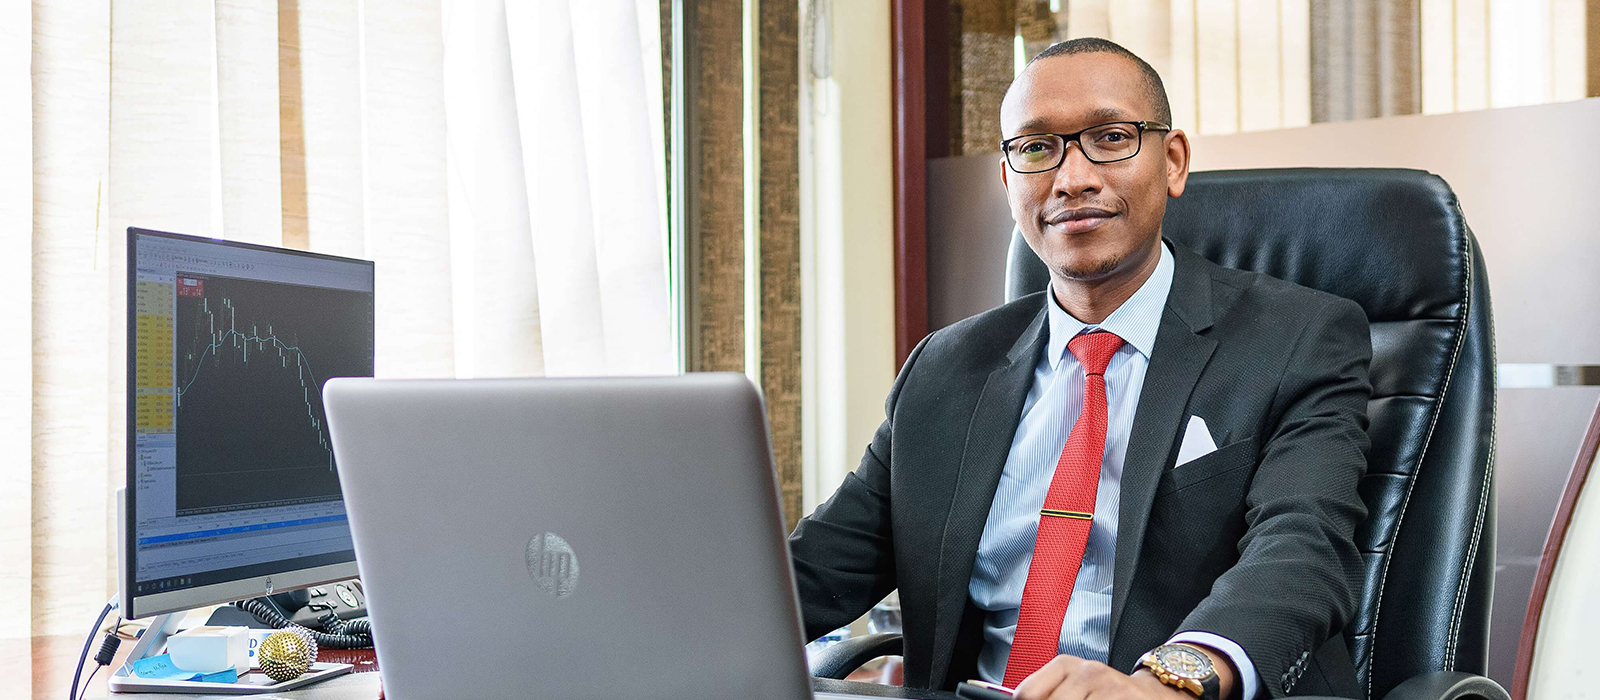 MansaX by Standard Investment Bank Delivers 9-Month Annualized Return of 23.3%